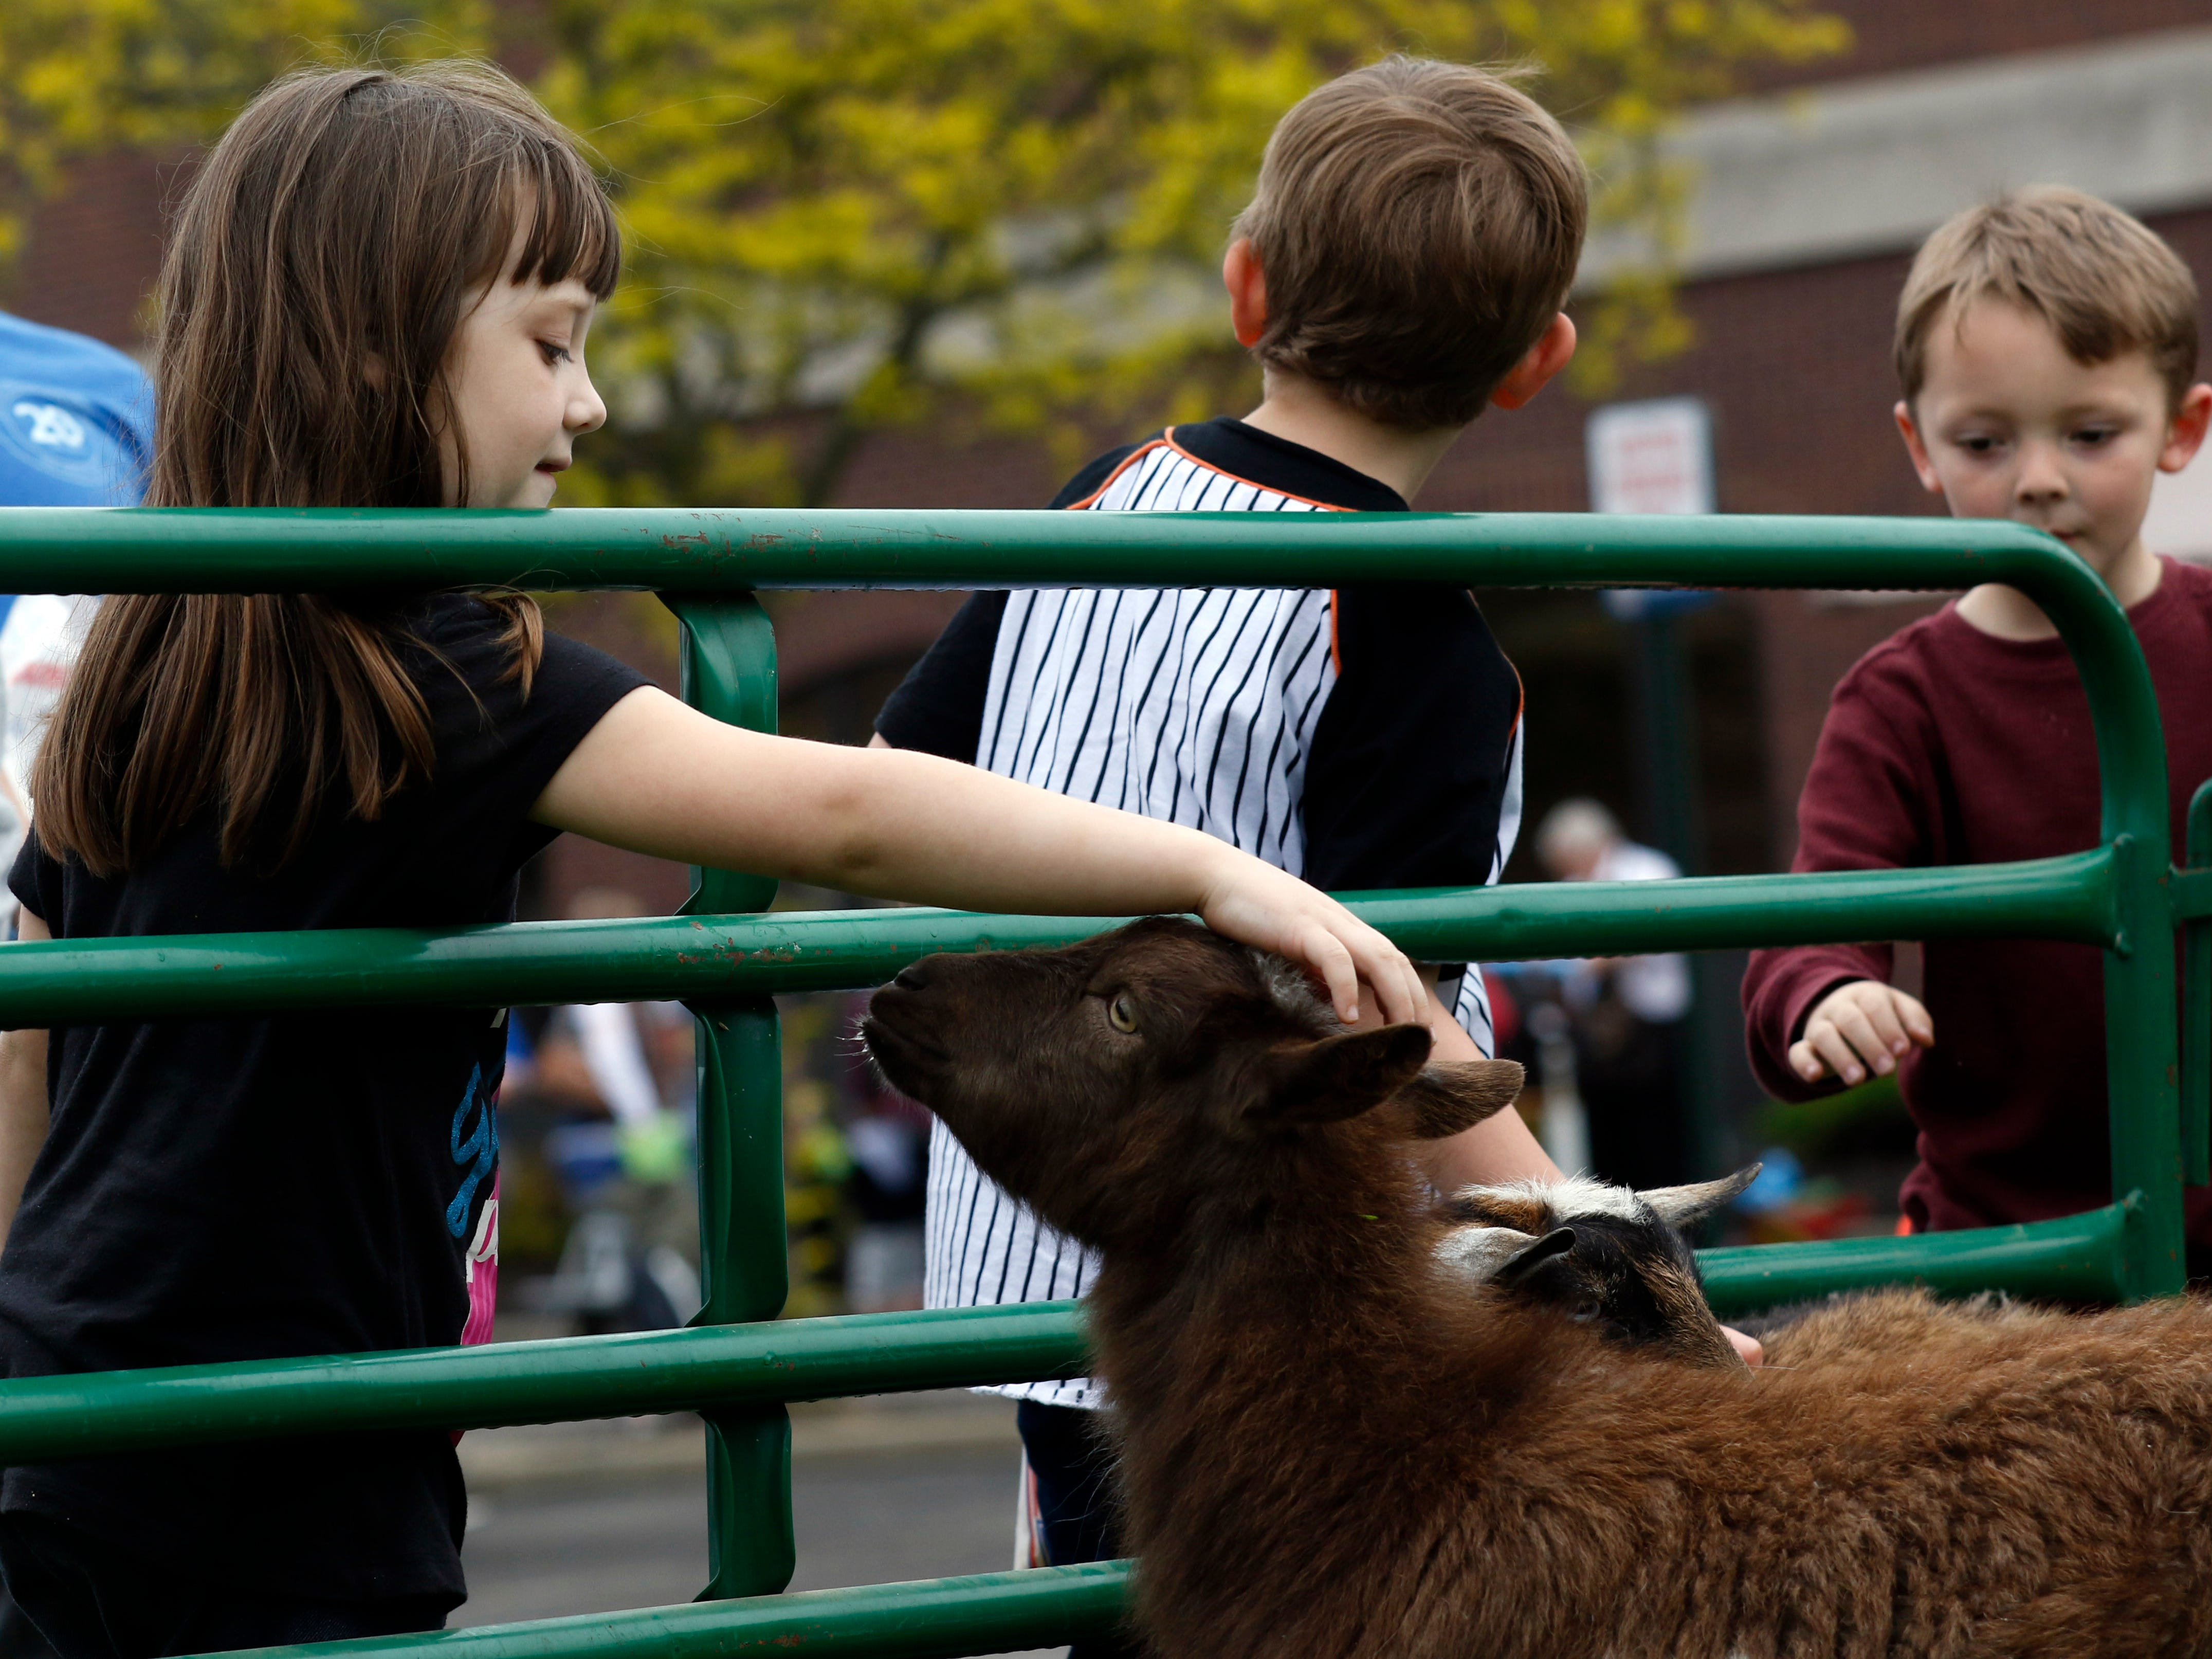 Brenlee Malone, 5, from Logan, pets a pygmy goat Thursday evening, April 25, 2019, during the Fairfield County Job and Family Services' Circus Night event in downtown Lancaster. Hundreds of people attended the event that featured live music, a petting zoo, face painting, food and games all provided for free by local companies and organizations. Fairfield County JFS employees have been organizing the event for 17 years.